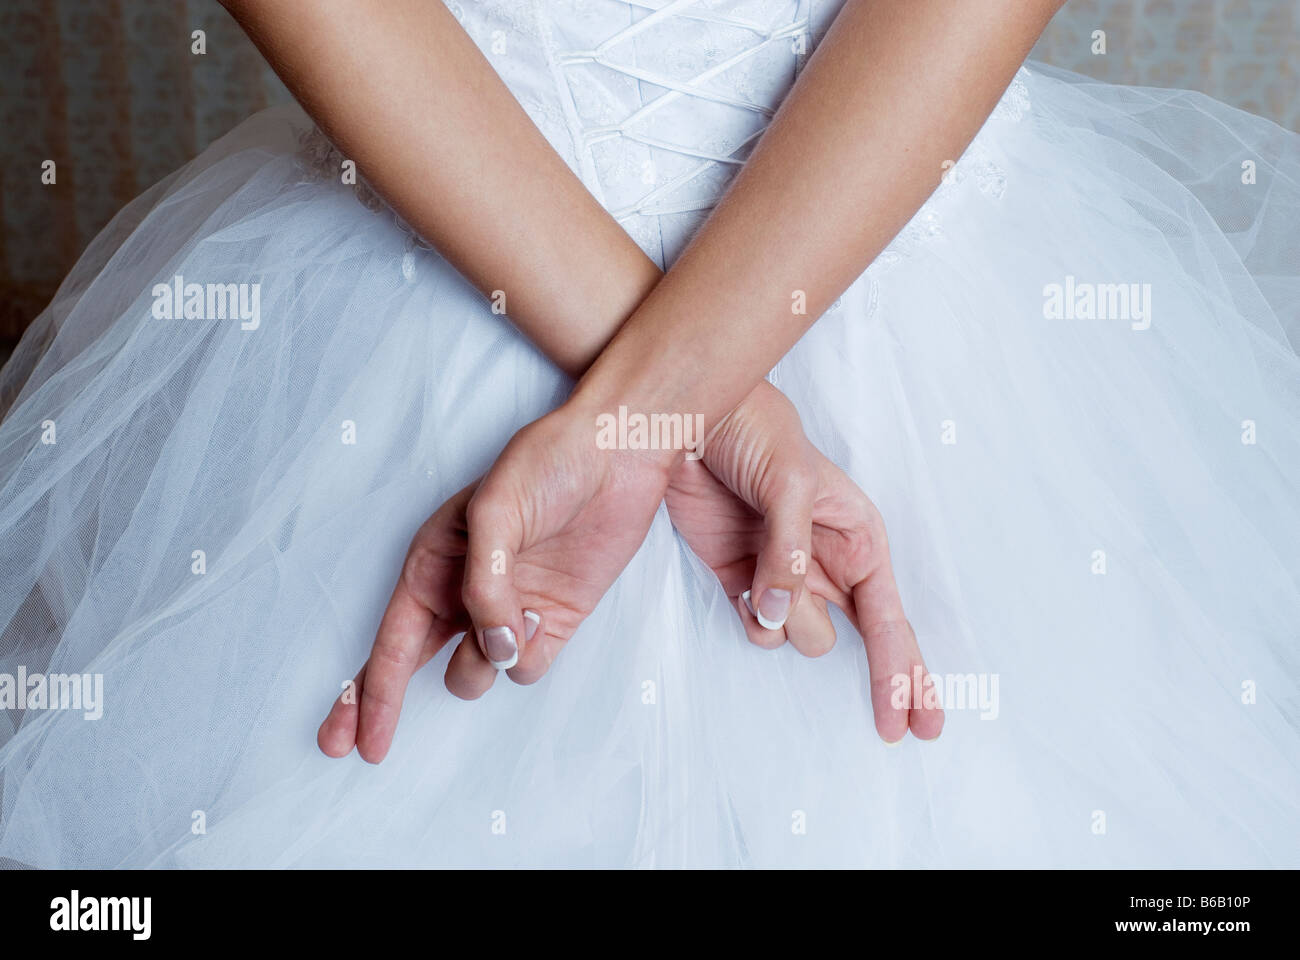 Brides fingers crossed behind back, mid section - Stock Image